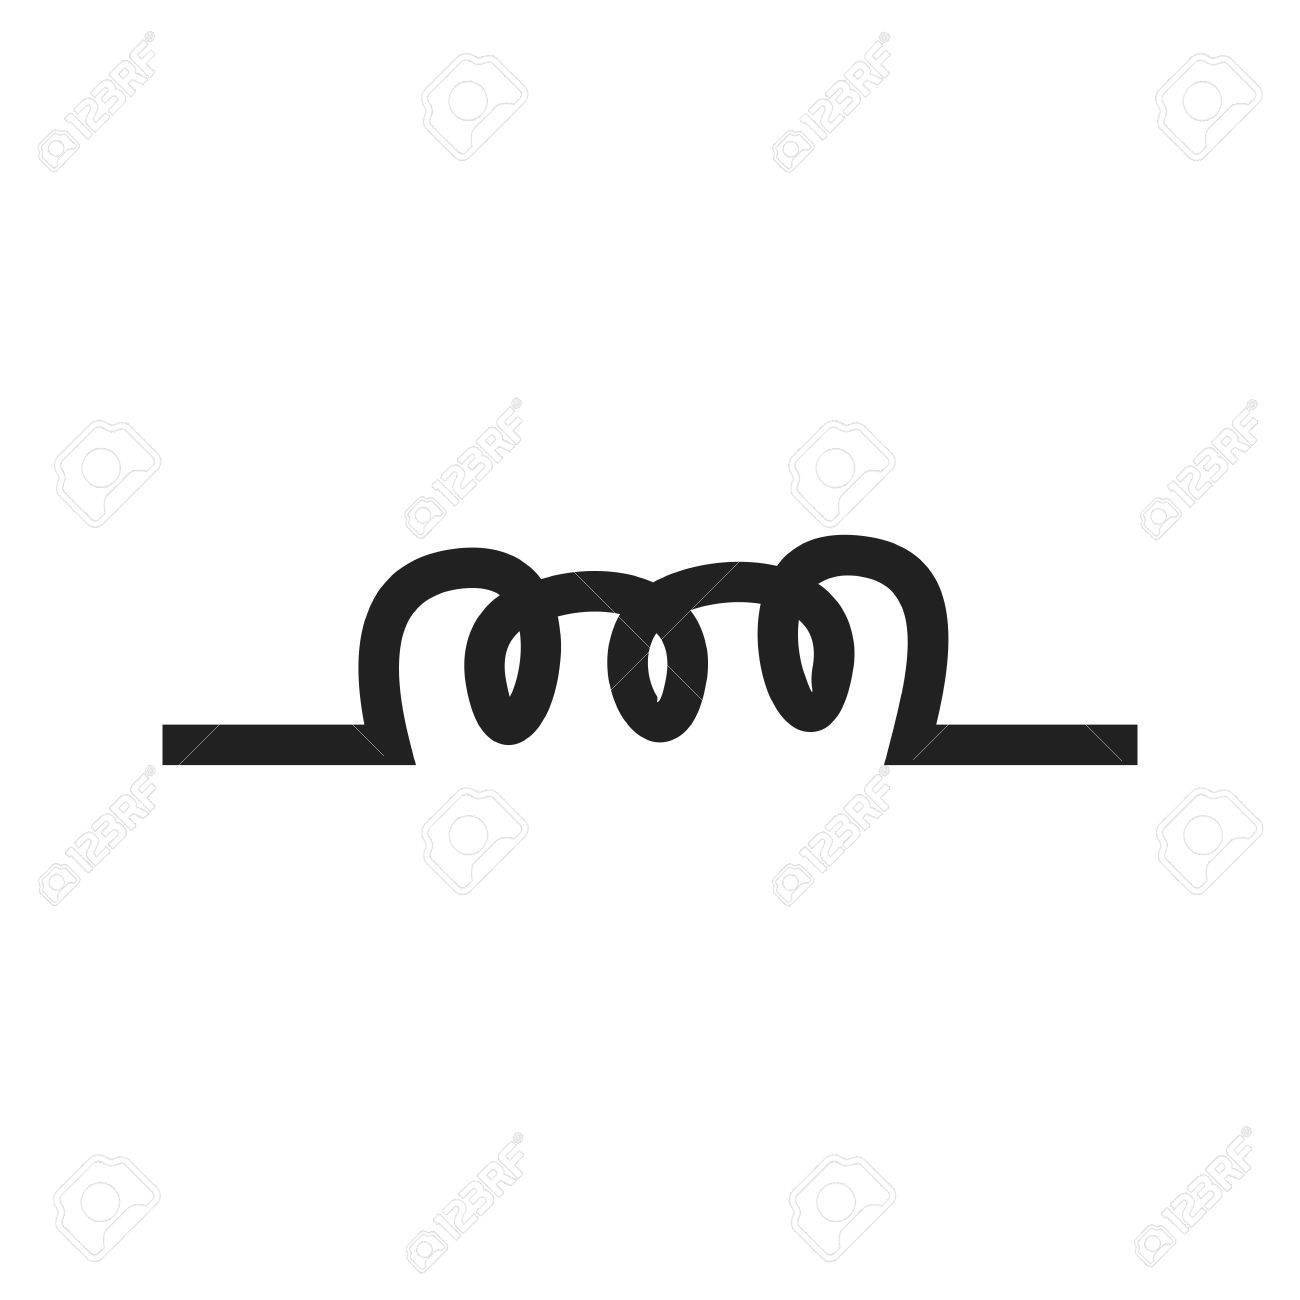 Copper Wire Inductor Icon Vector Image Can Also Be Used For Coils Of Are Commonly In Electrical Inductors Electric Circuits